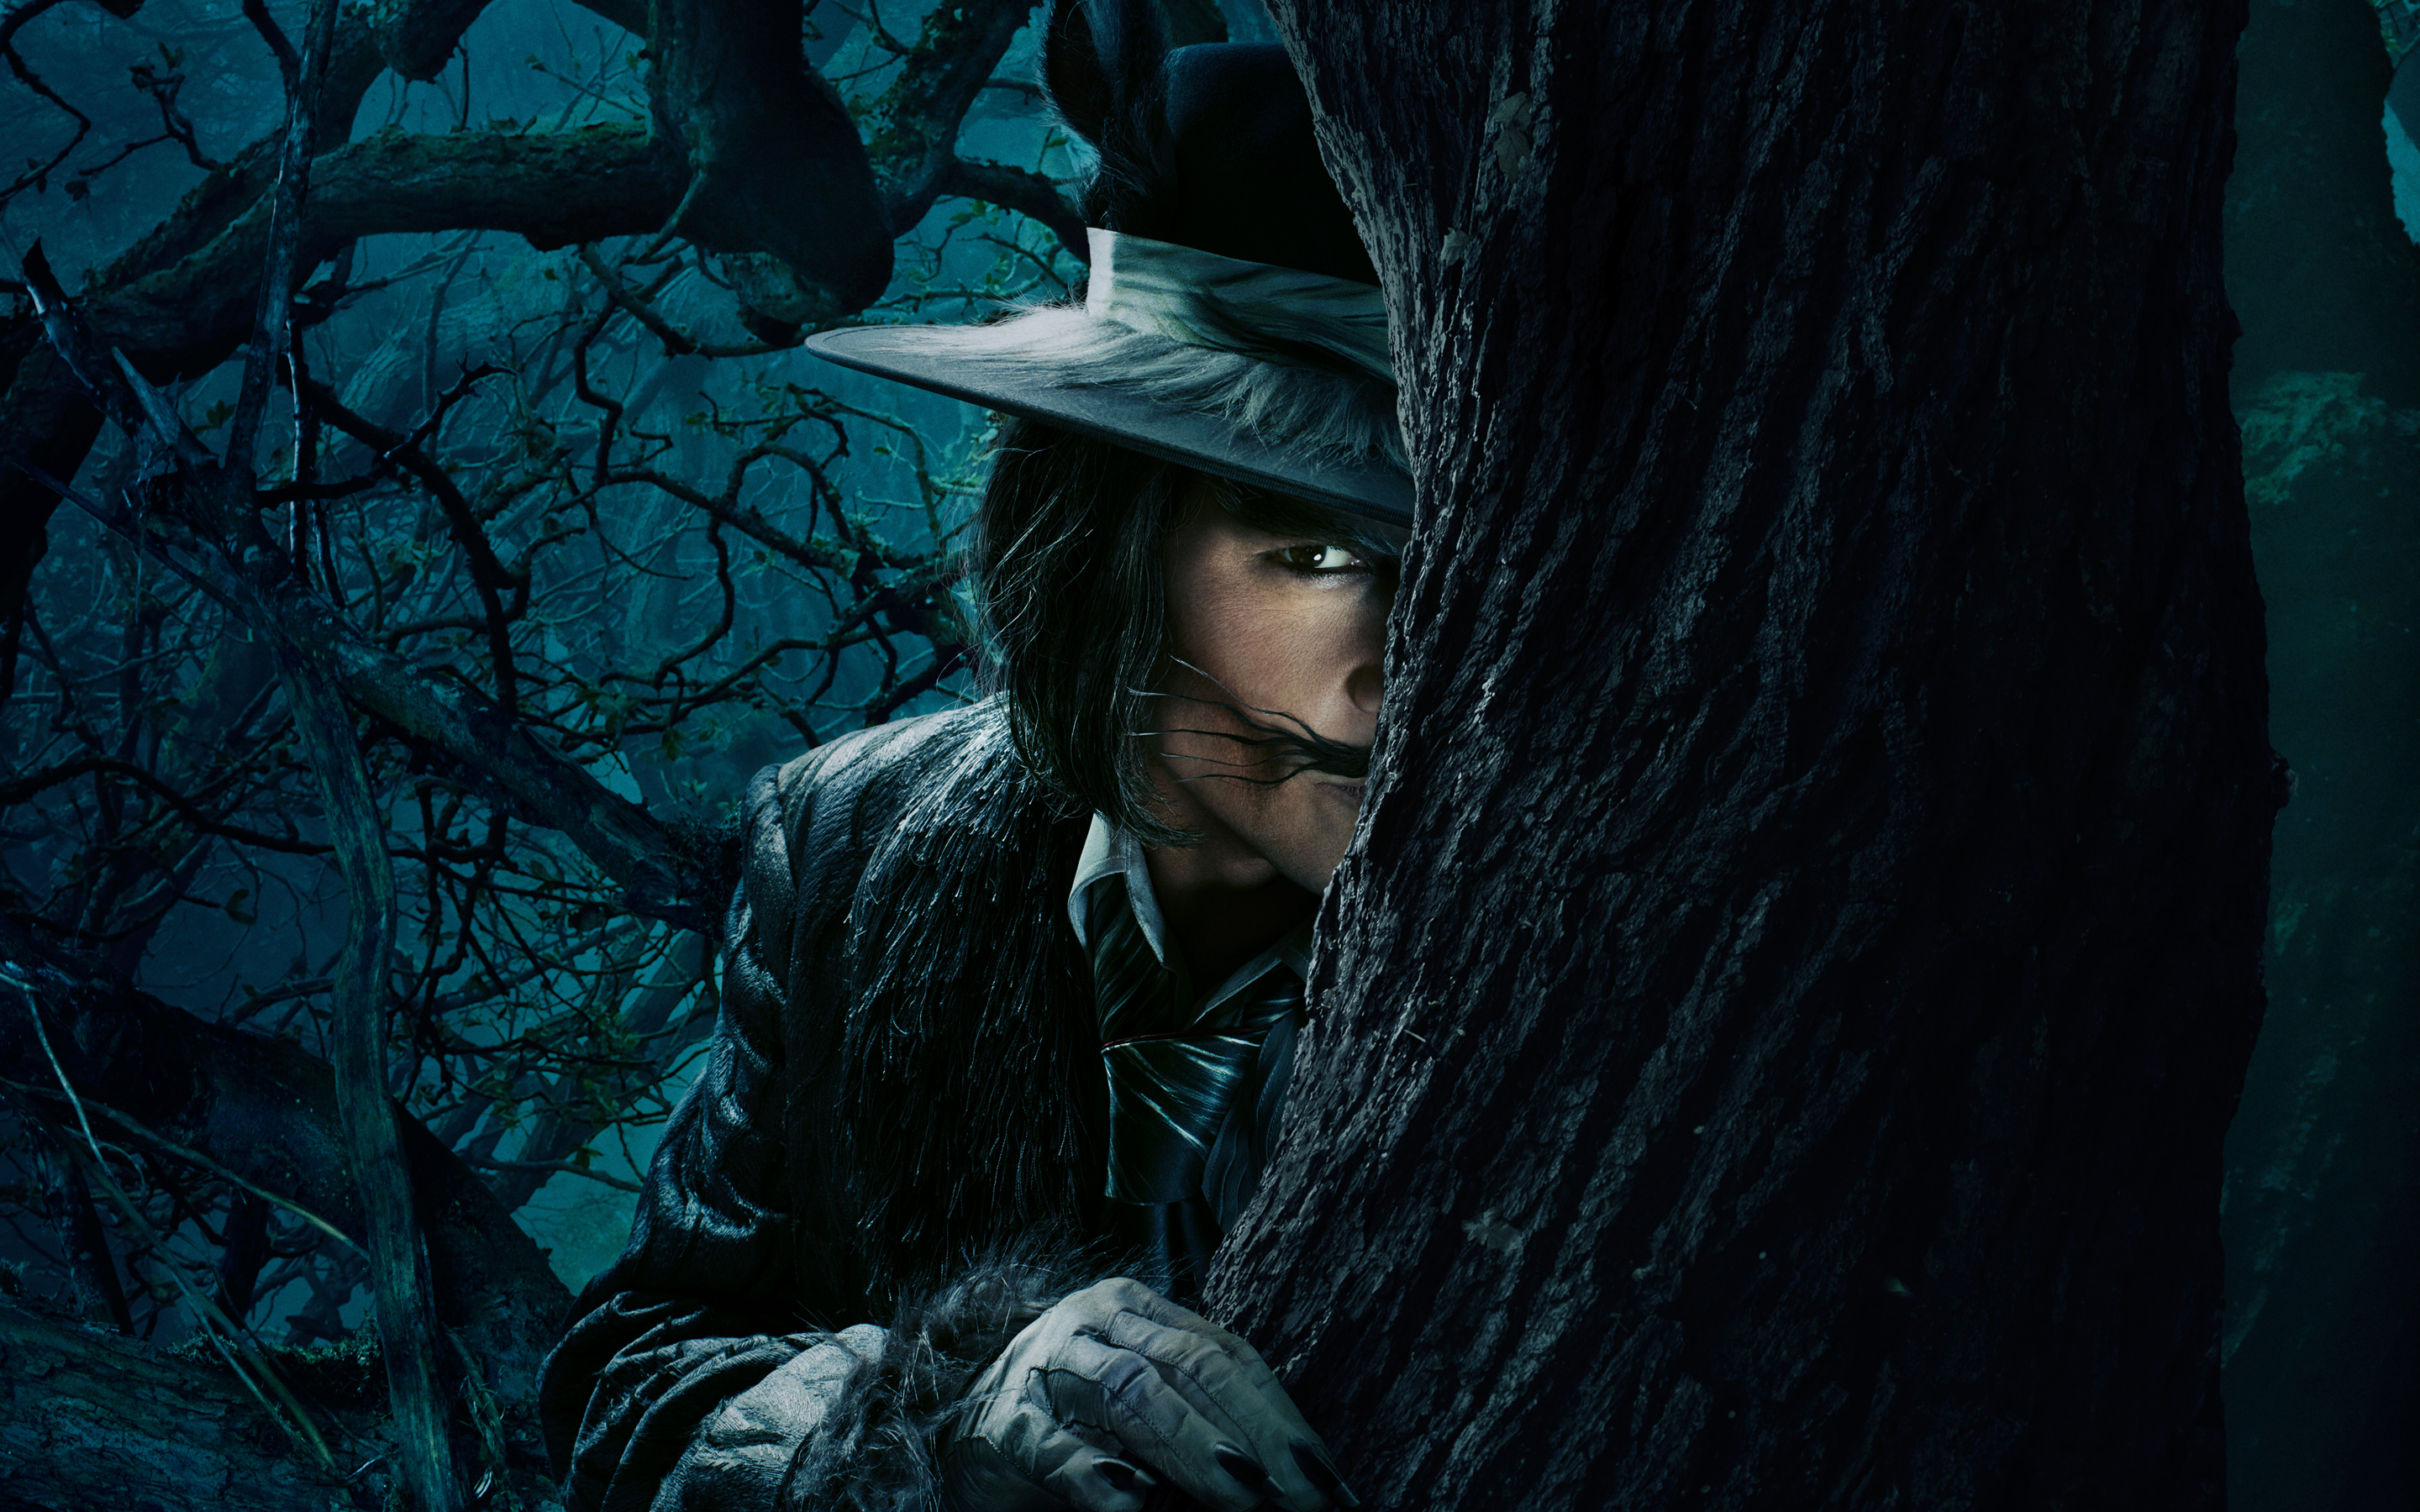 johnny_depp_the_wolf_into_the_woods-wide